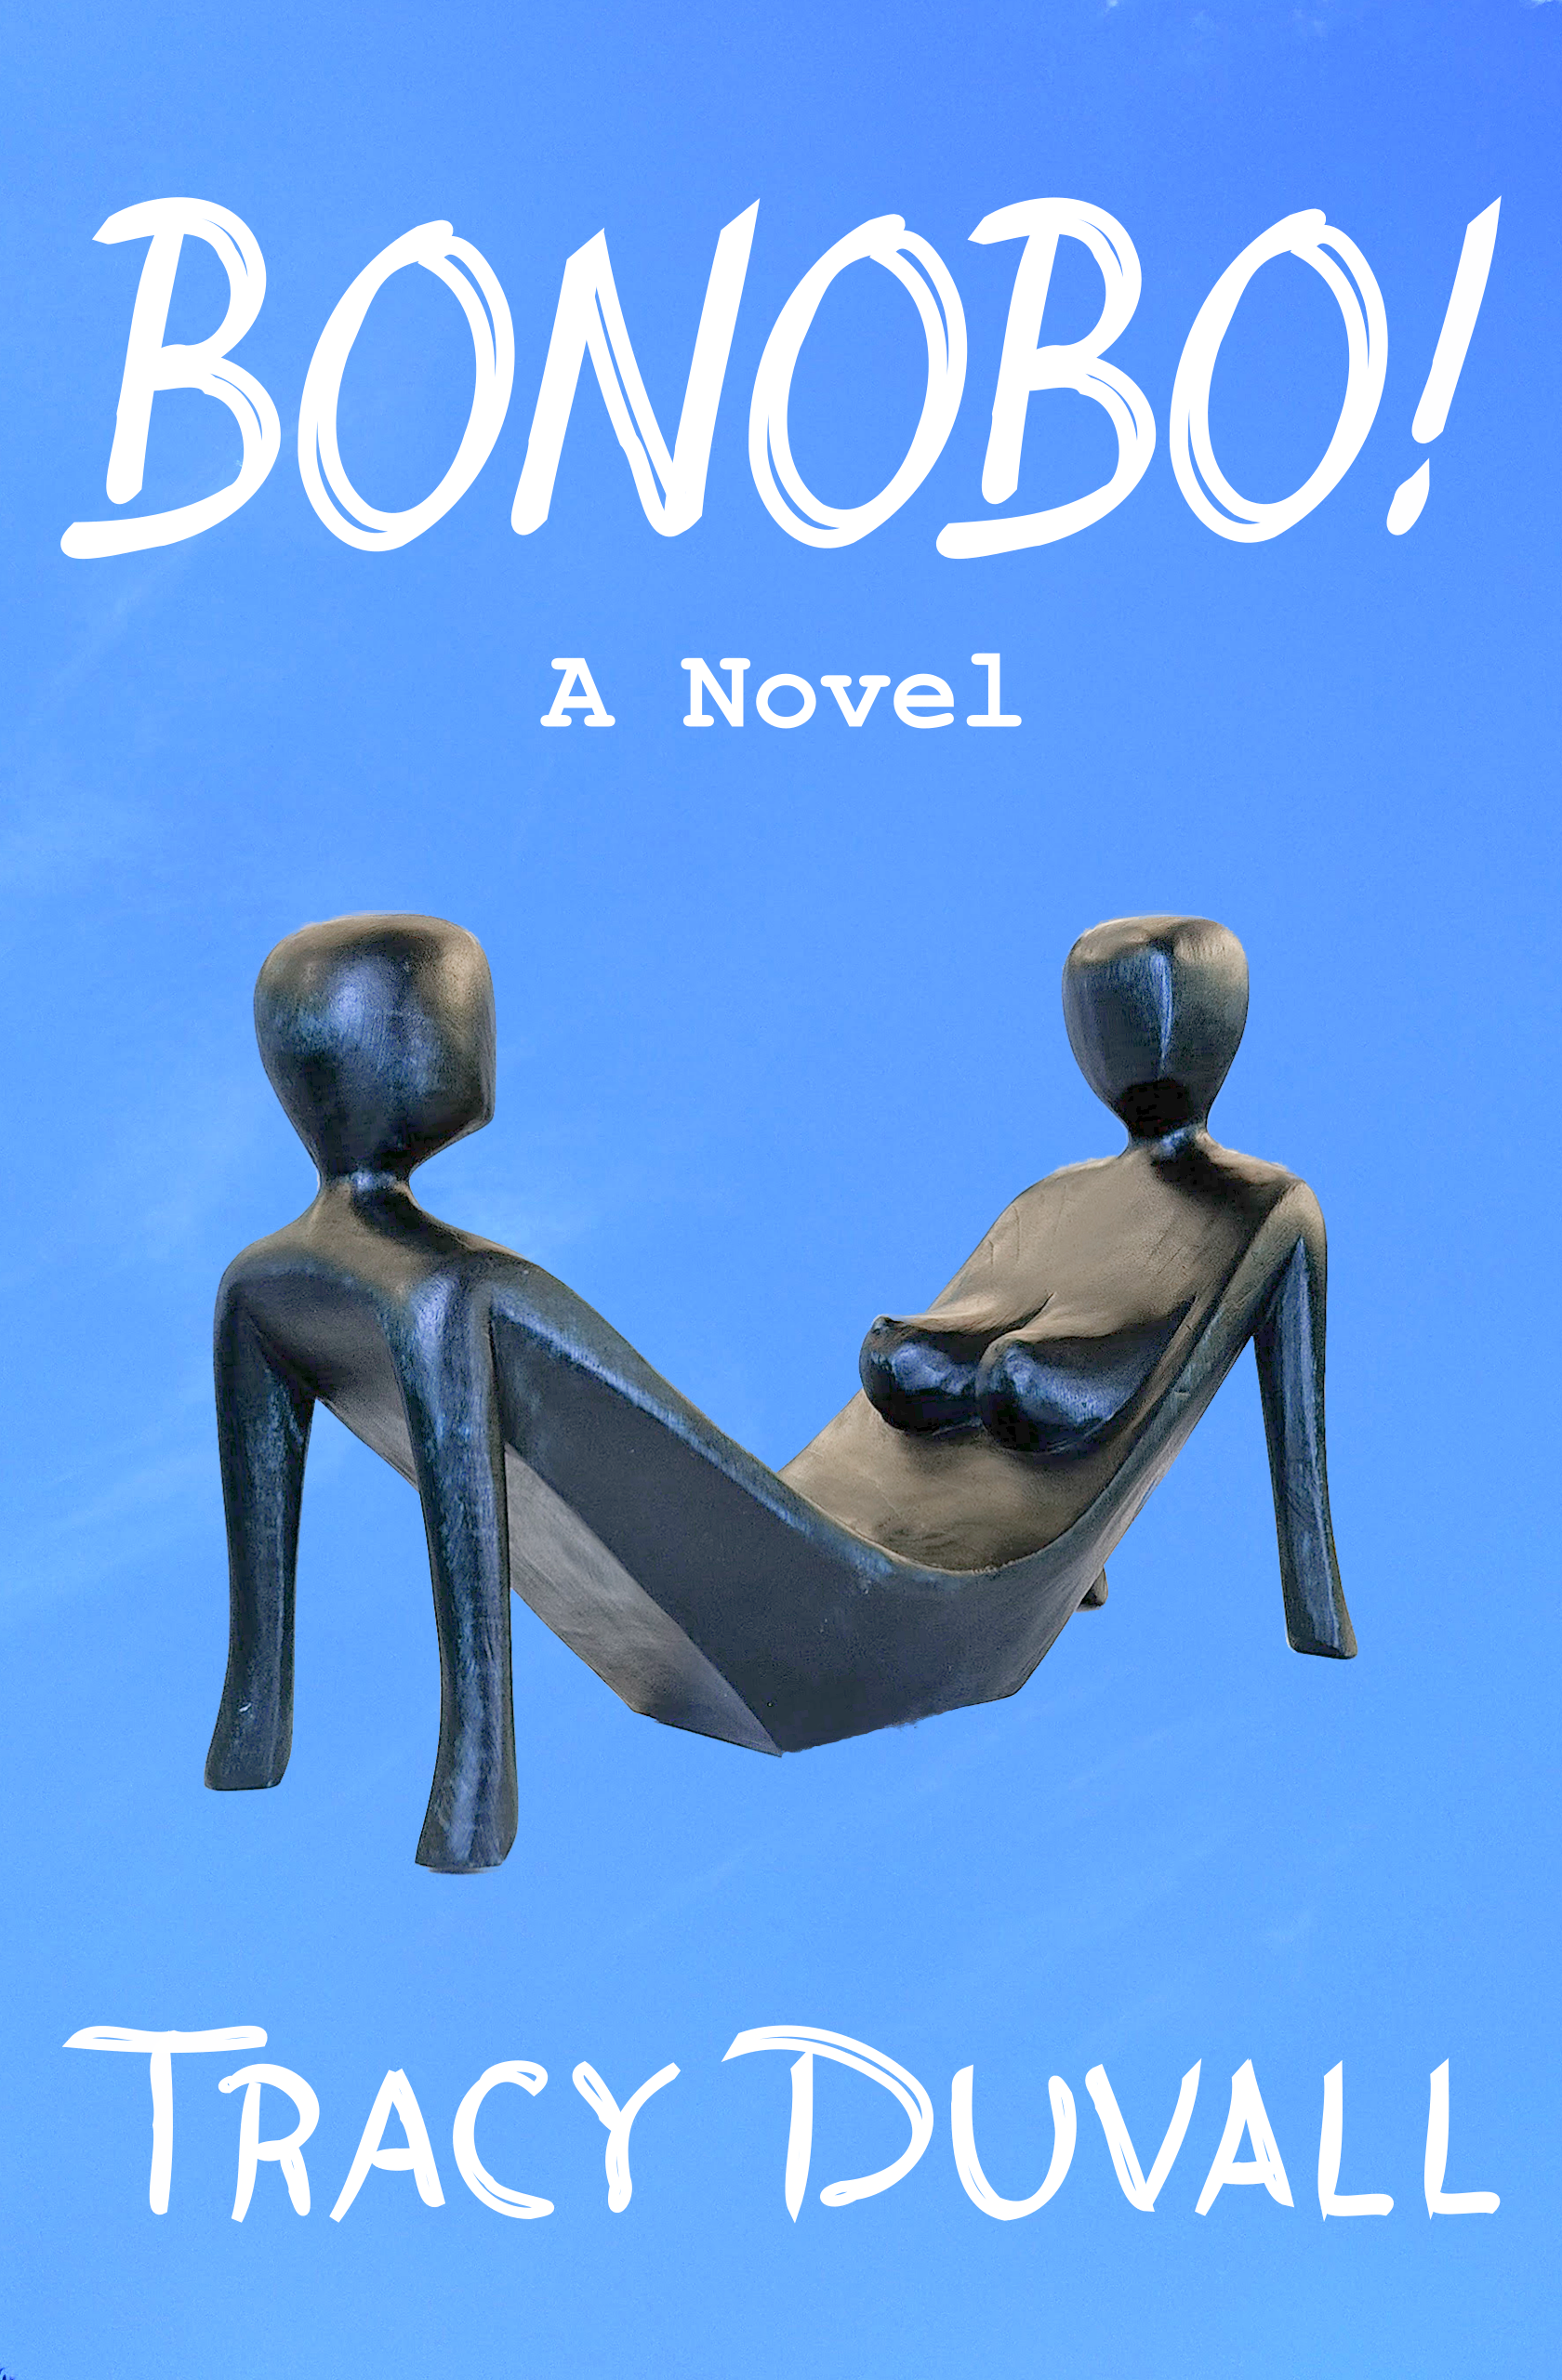 Link to BONOBO! on Amazon.com